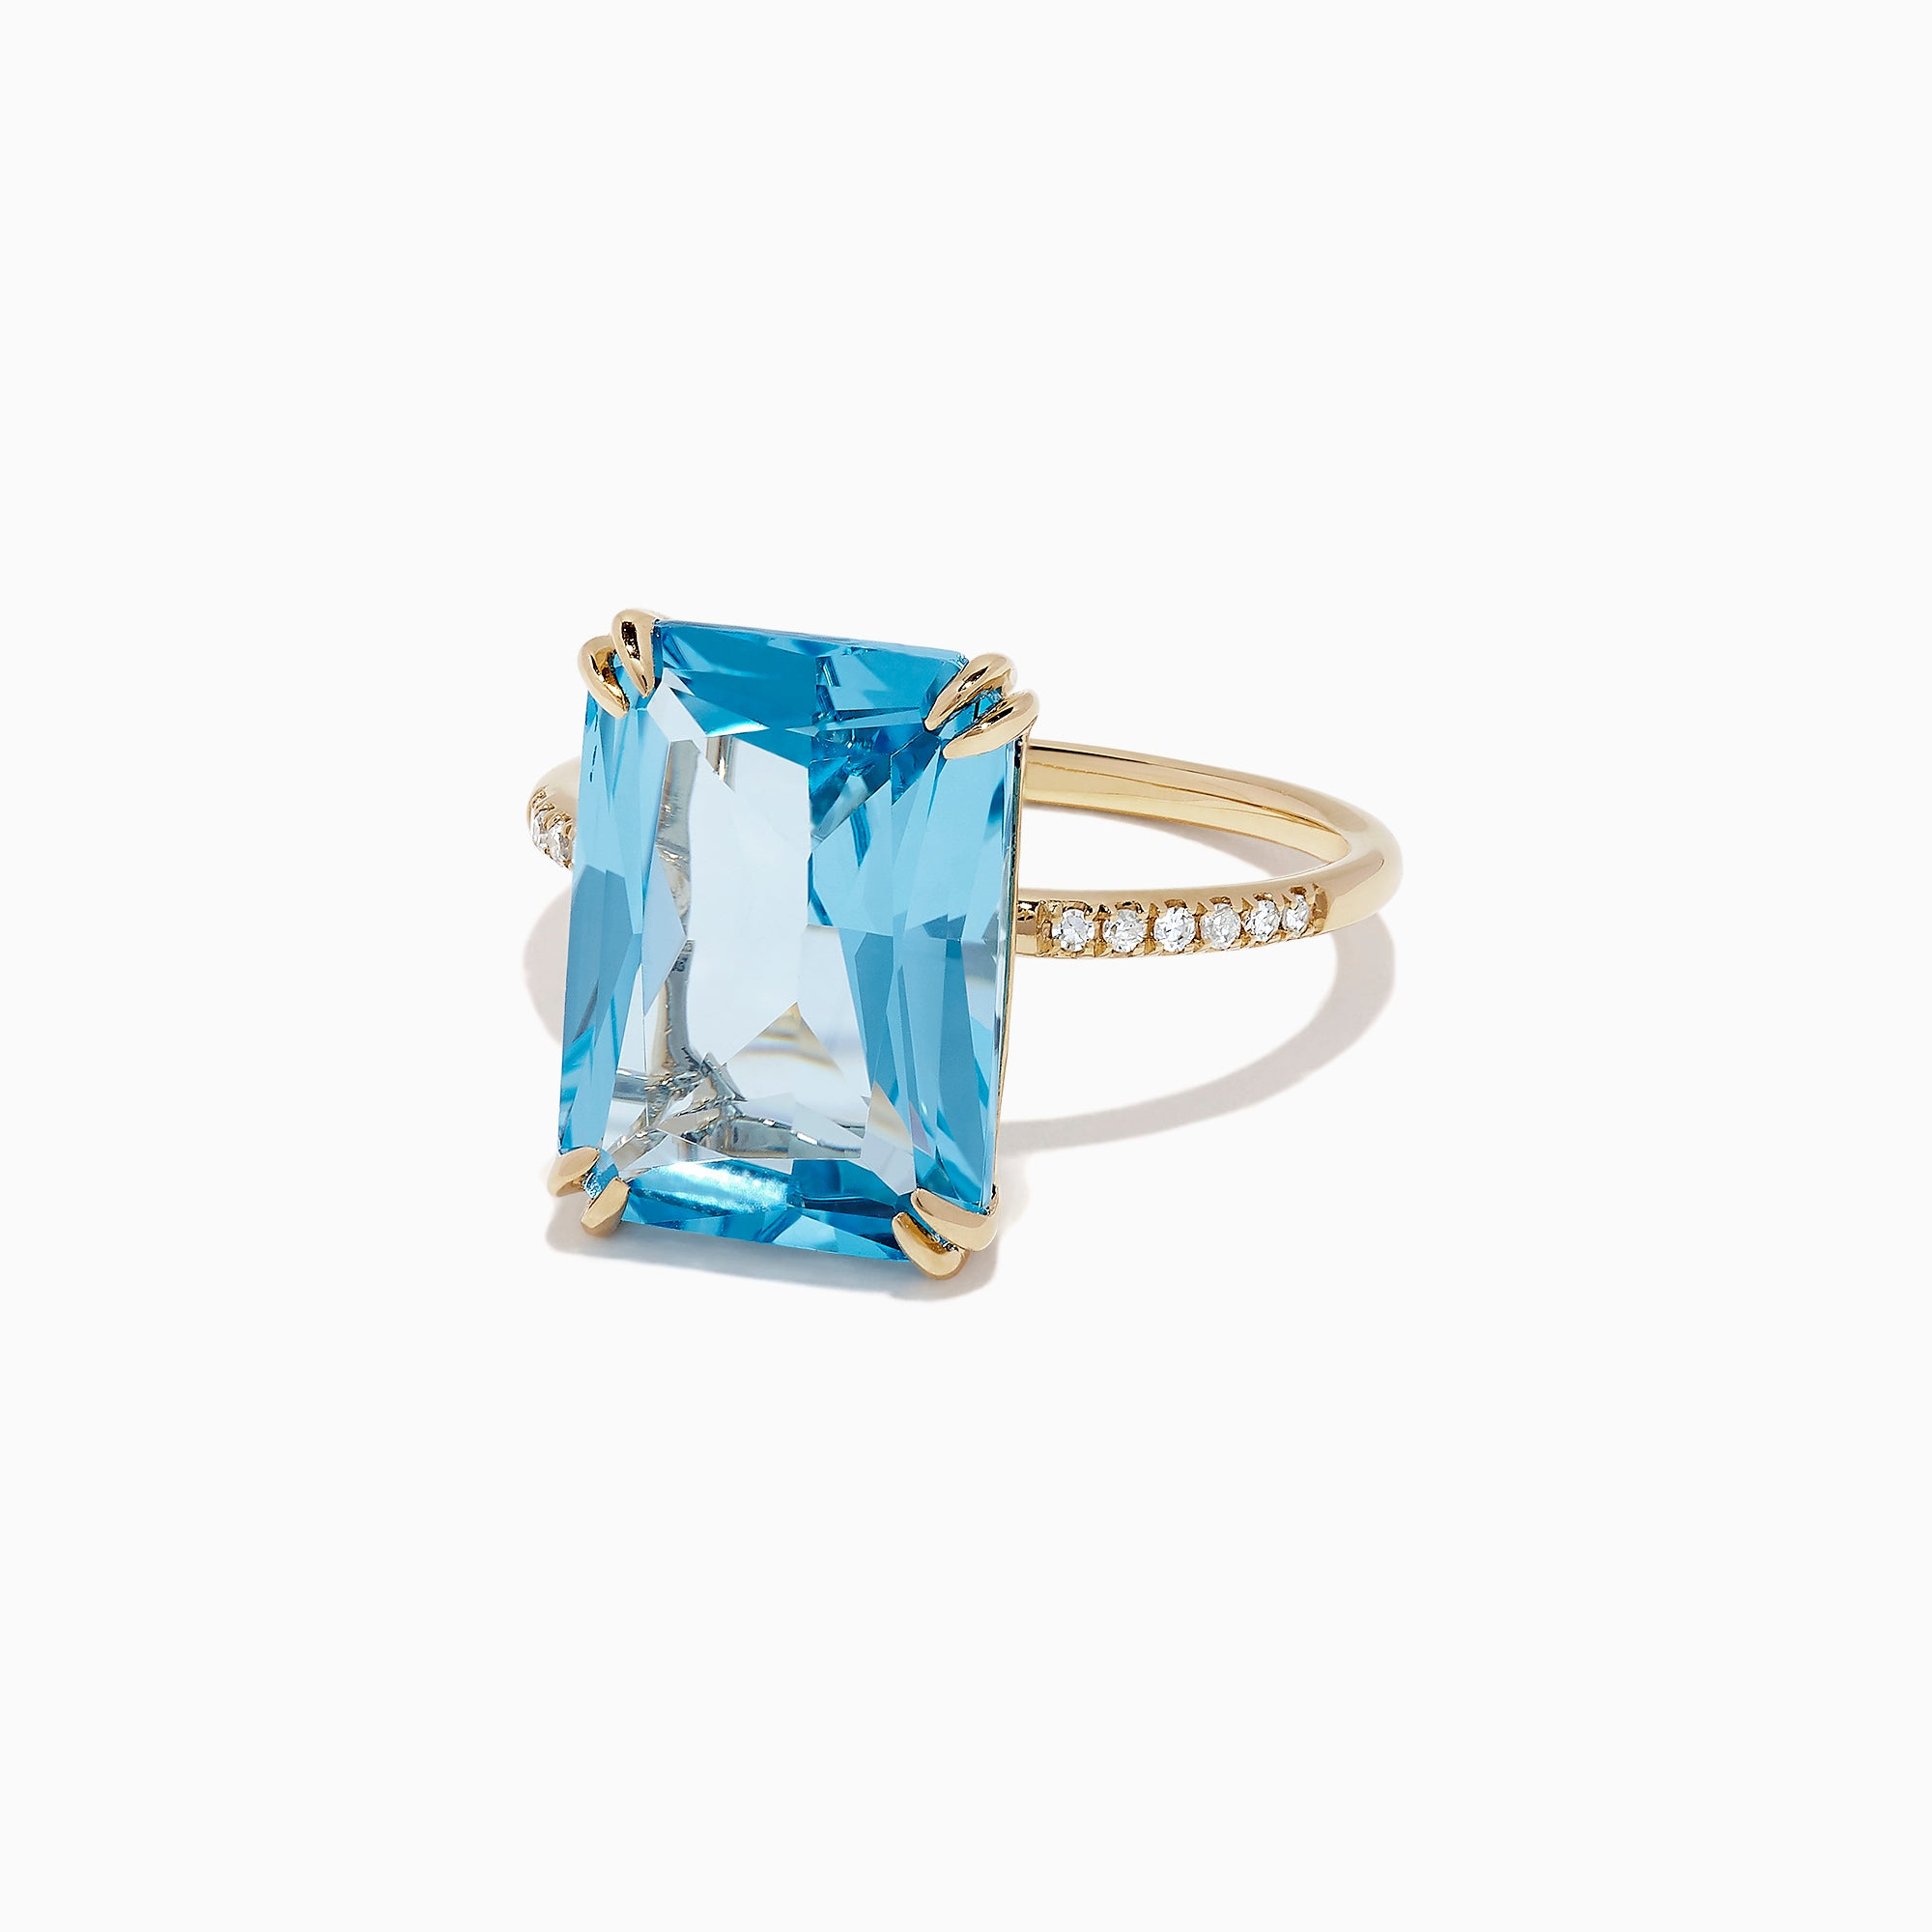 Effy Ocean Bleu 14K Yellow Gold Blue Topaz and Diamond Ring, 8.06 TCW